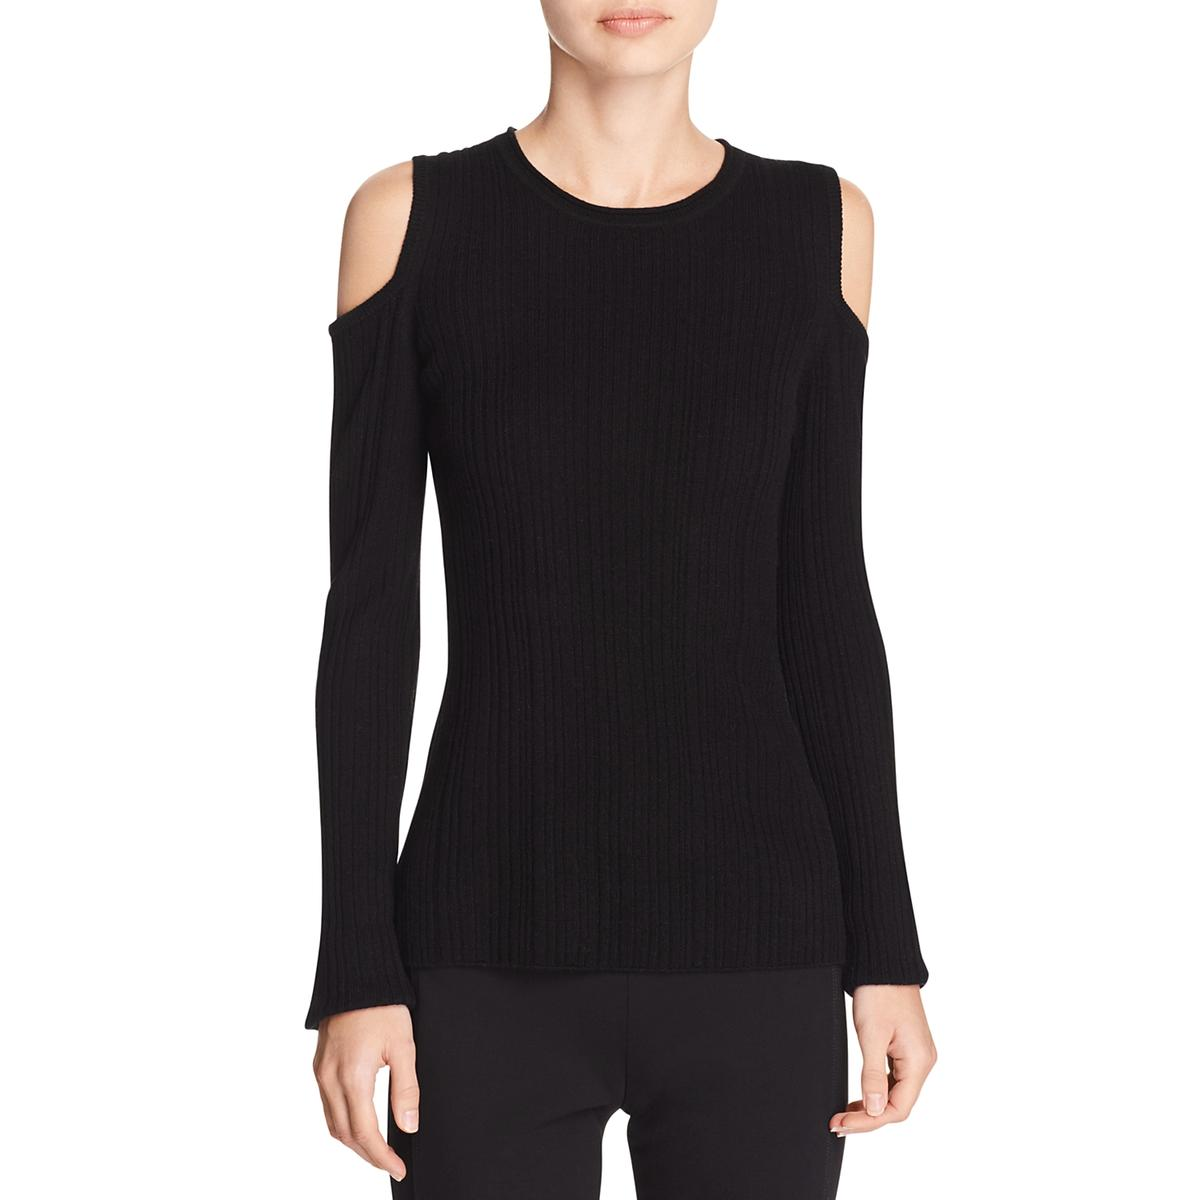 Elie Tahari 5696 Womens Marlah Wool Cashmere Pullover Sweater Top ...